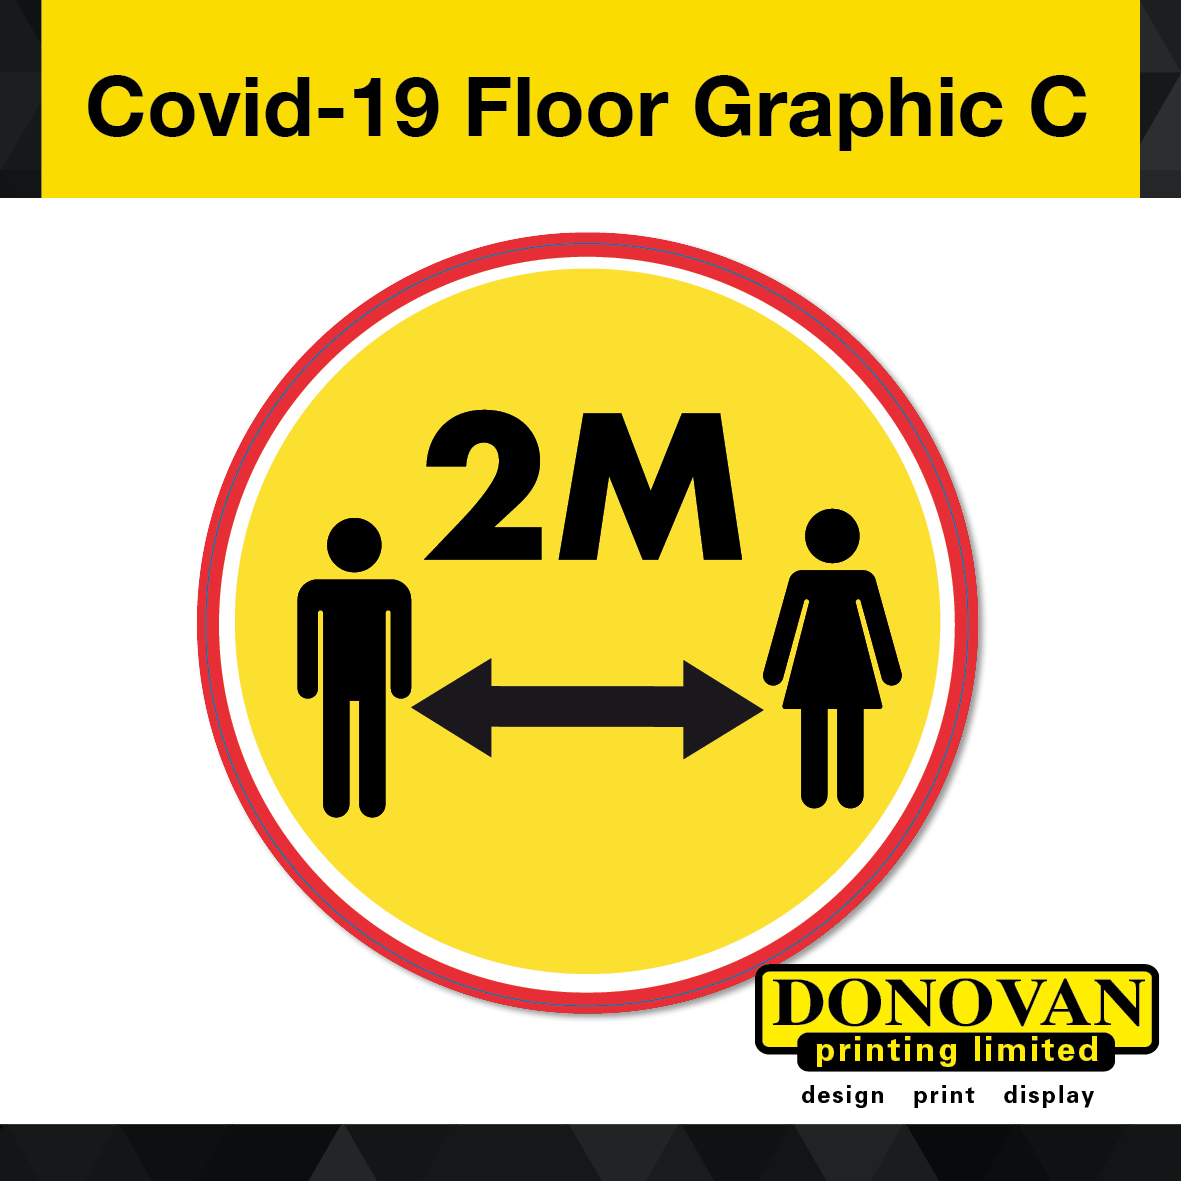 Covid Floor Graphic C Image